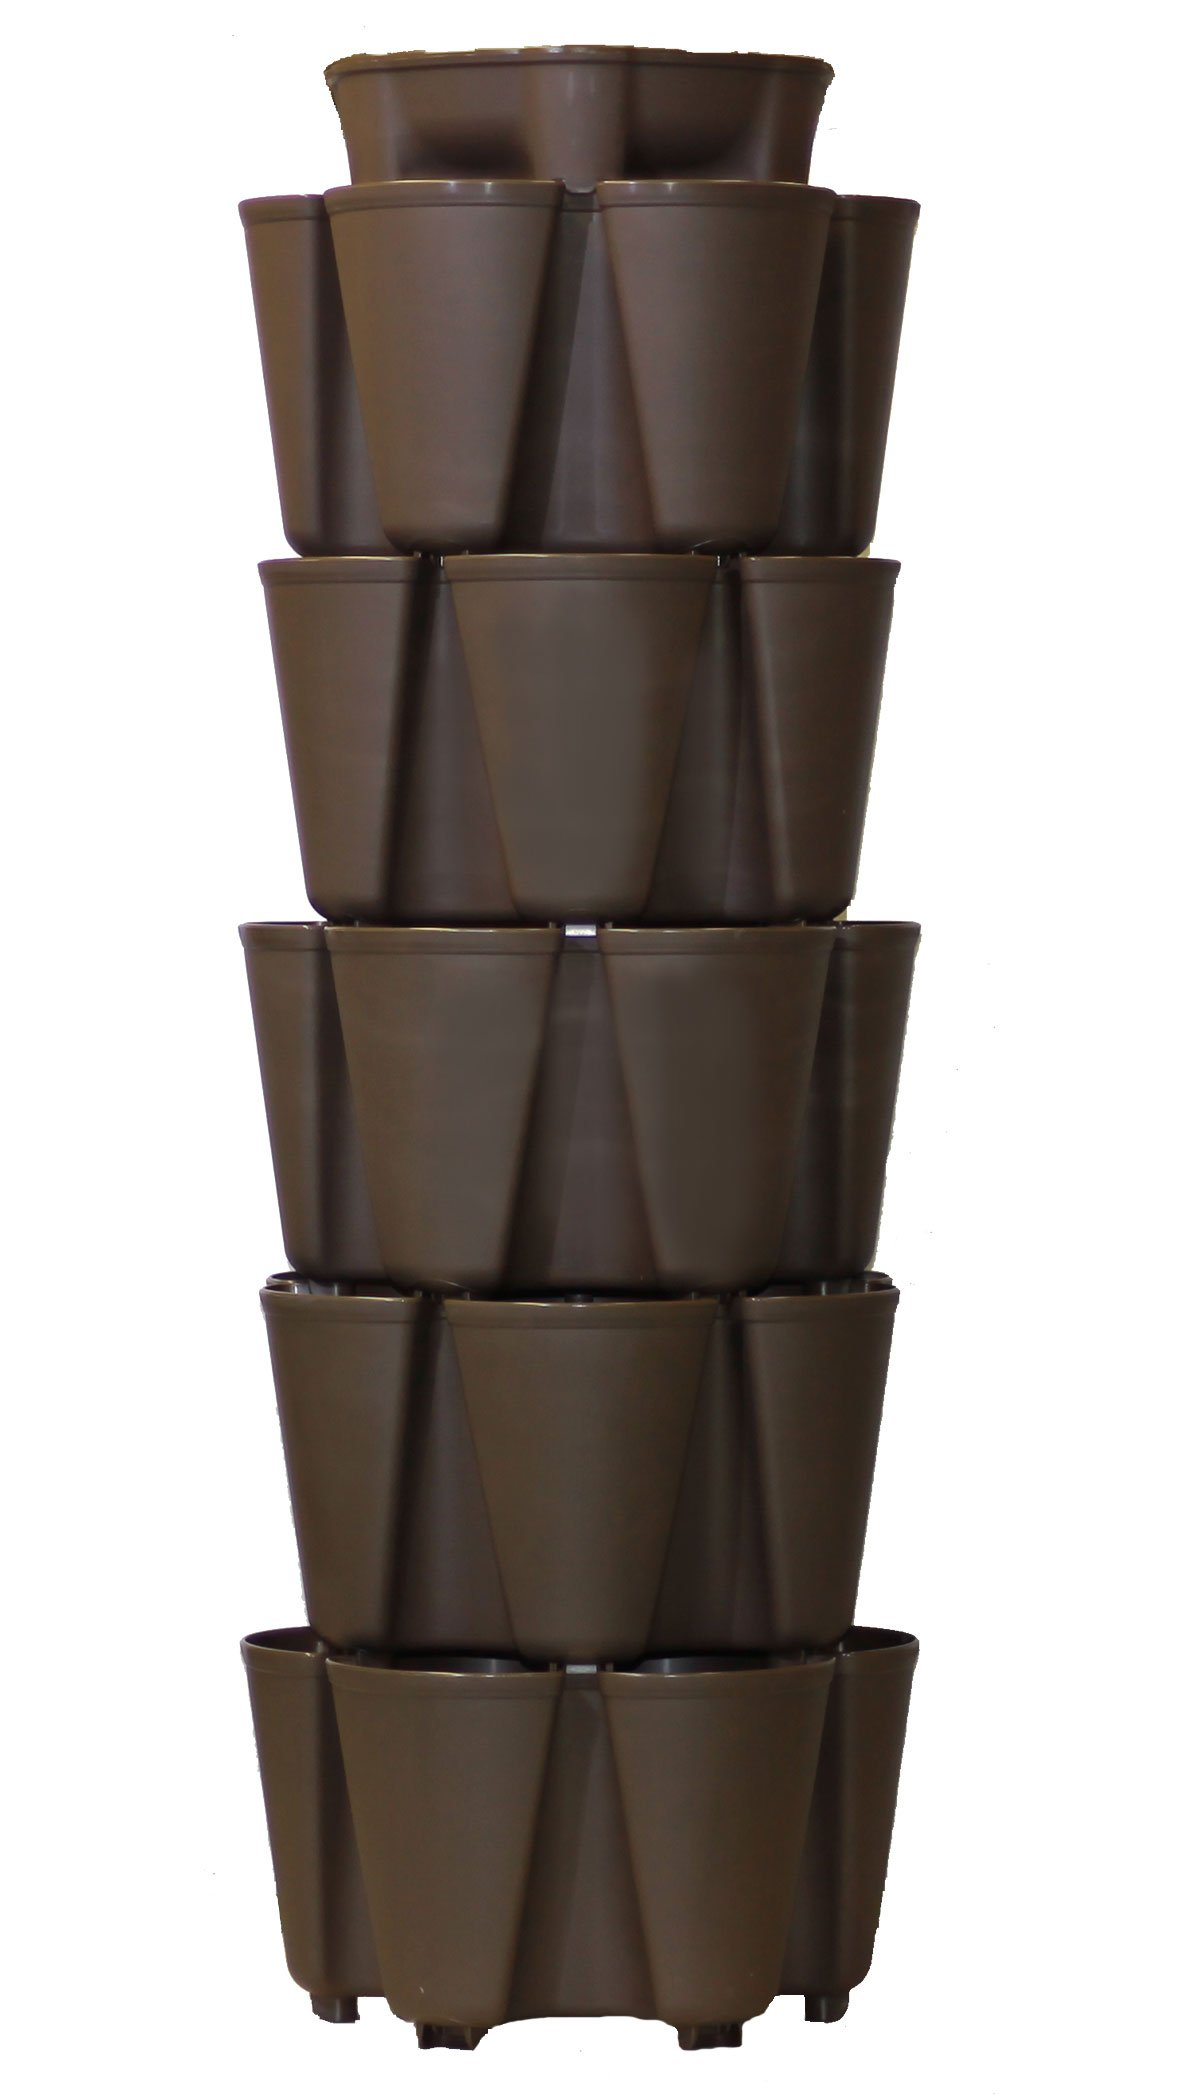 GreenStalk Patented Large 5 Tier Vertical Garden Planter with Patented Internal Watering System Great for Growing a Variety of Strawberries, Vegetables, Herbs, & Flowers (Chocolate Brown)